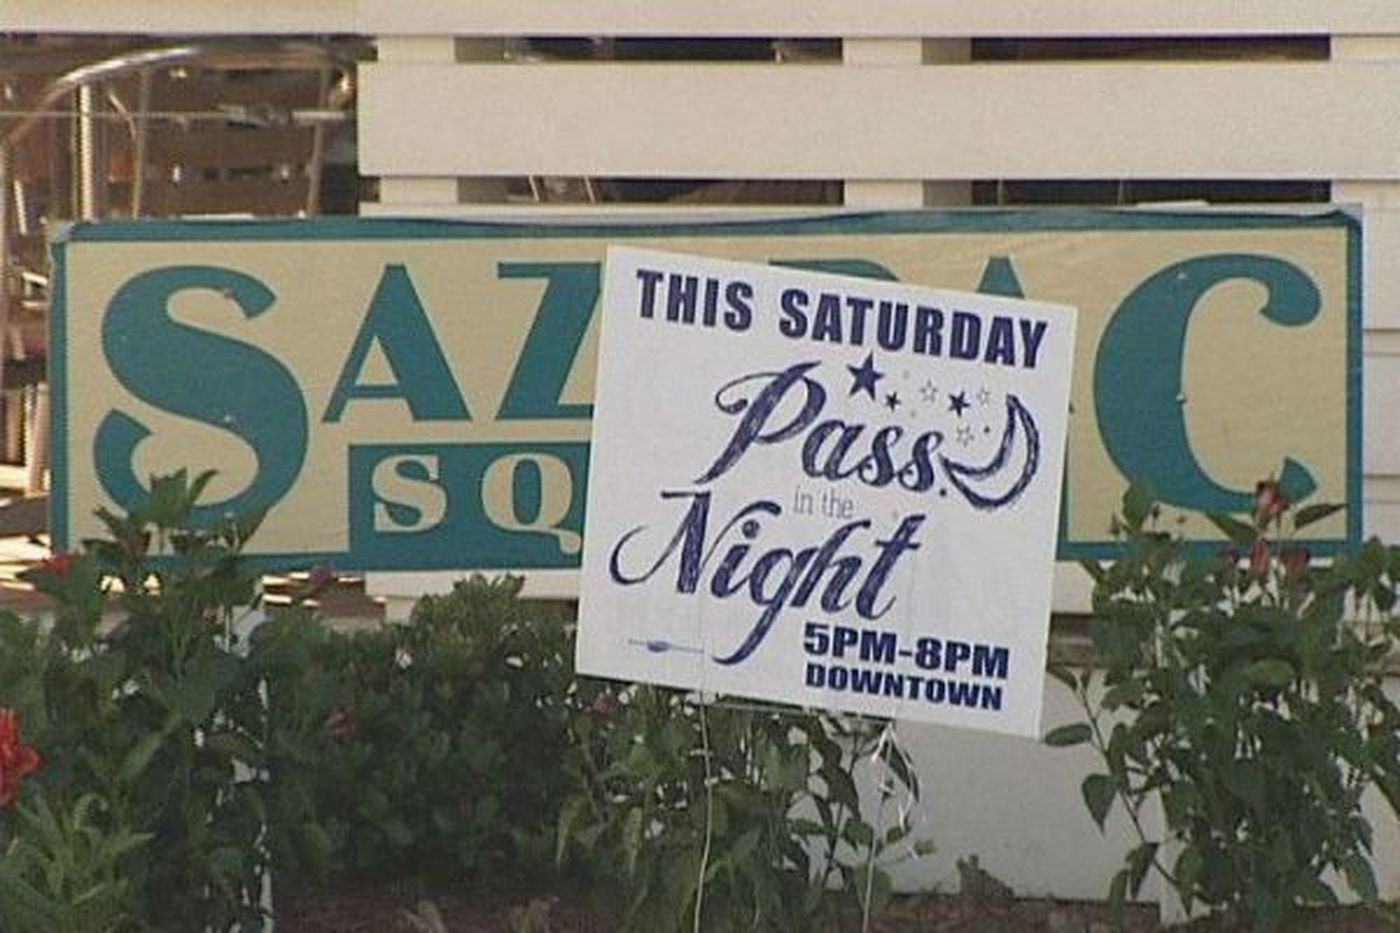 Pass In The Night Draws A Crowd In Pass Christian